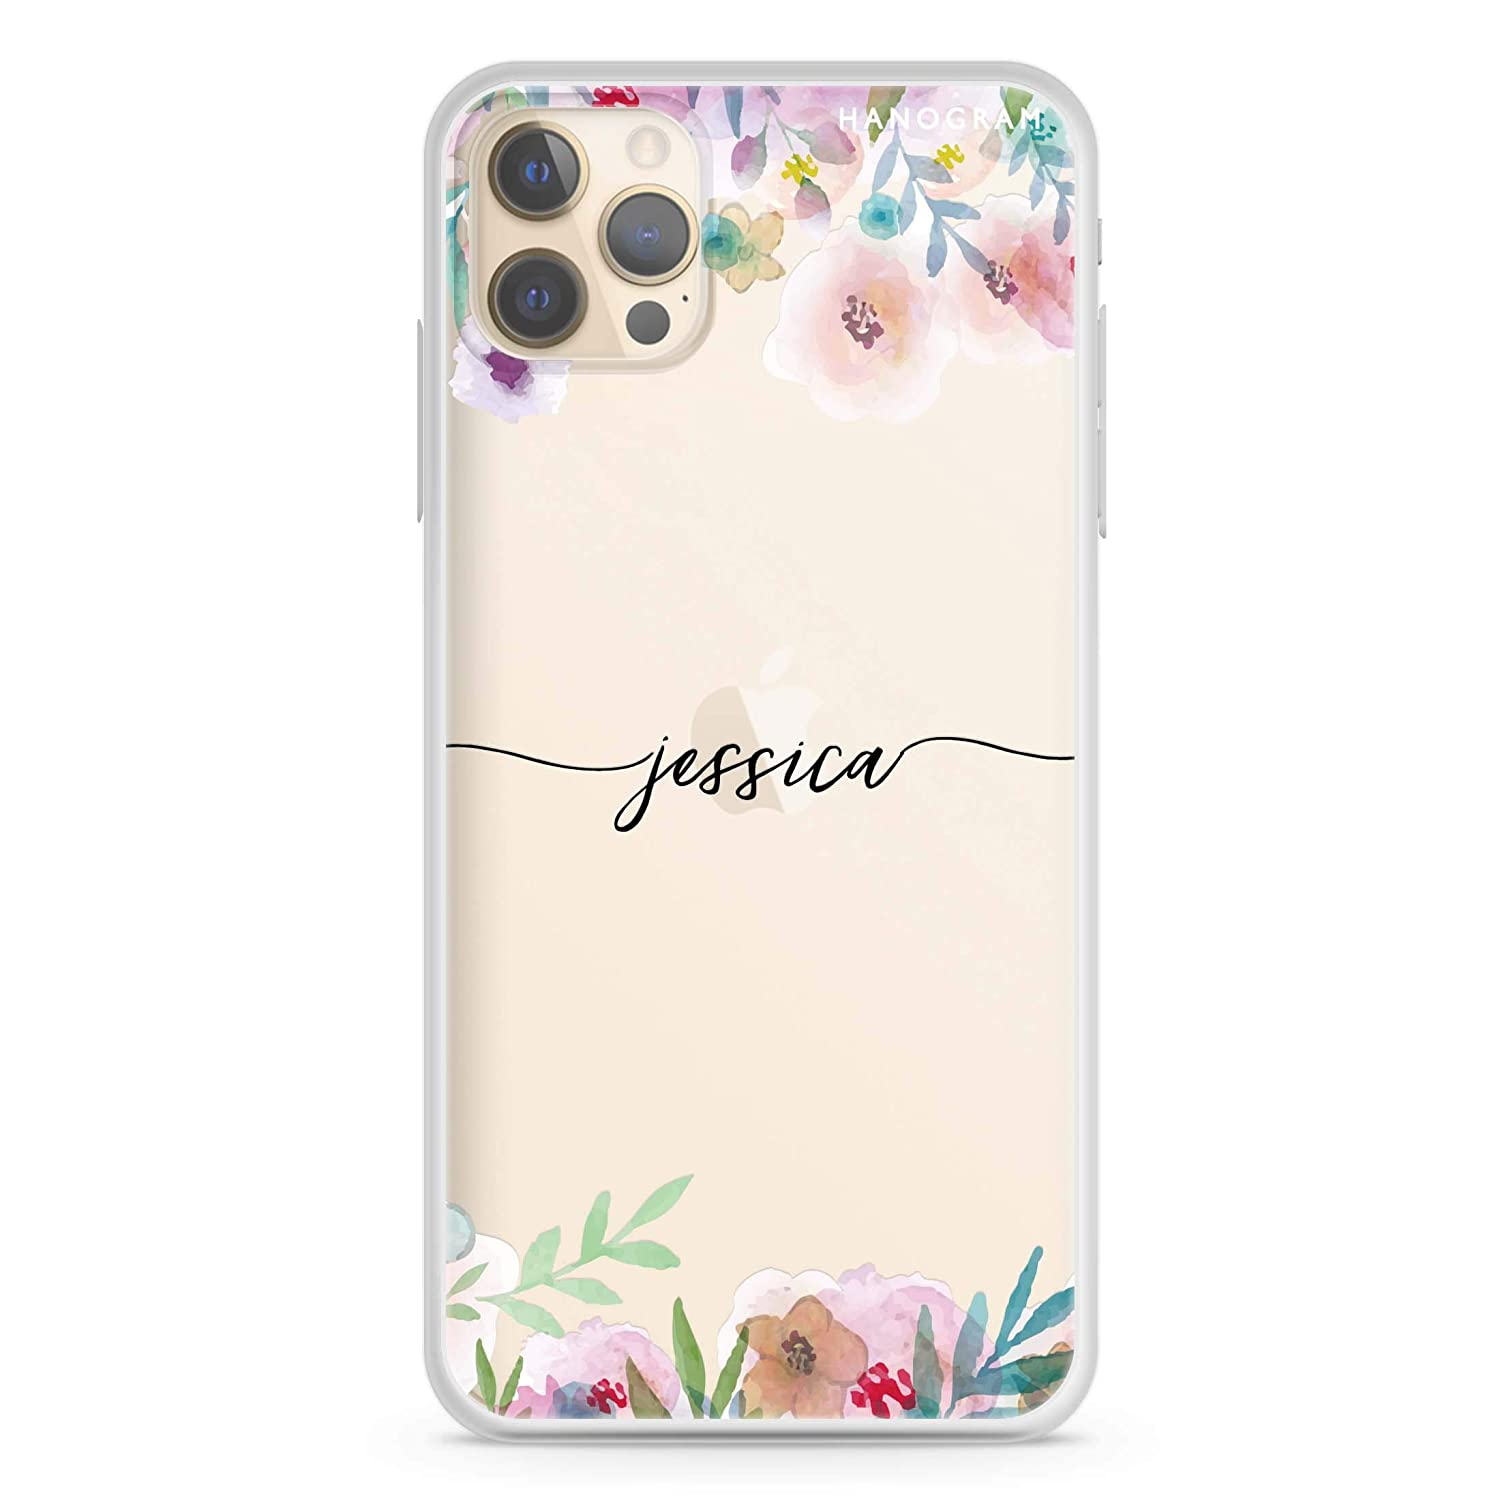 Art of Floral iPhone 12 Pro Max Soft Case iPho Dealing full lowest price price reduction Clear